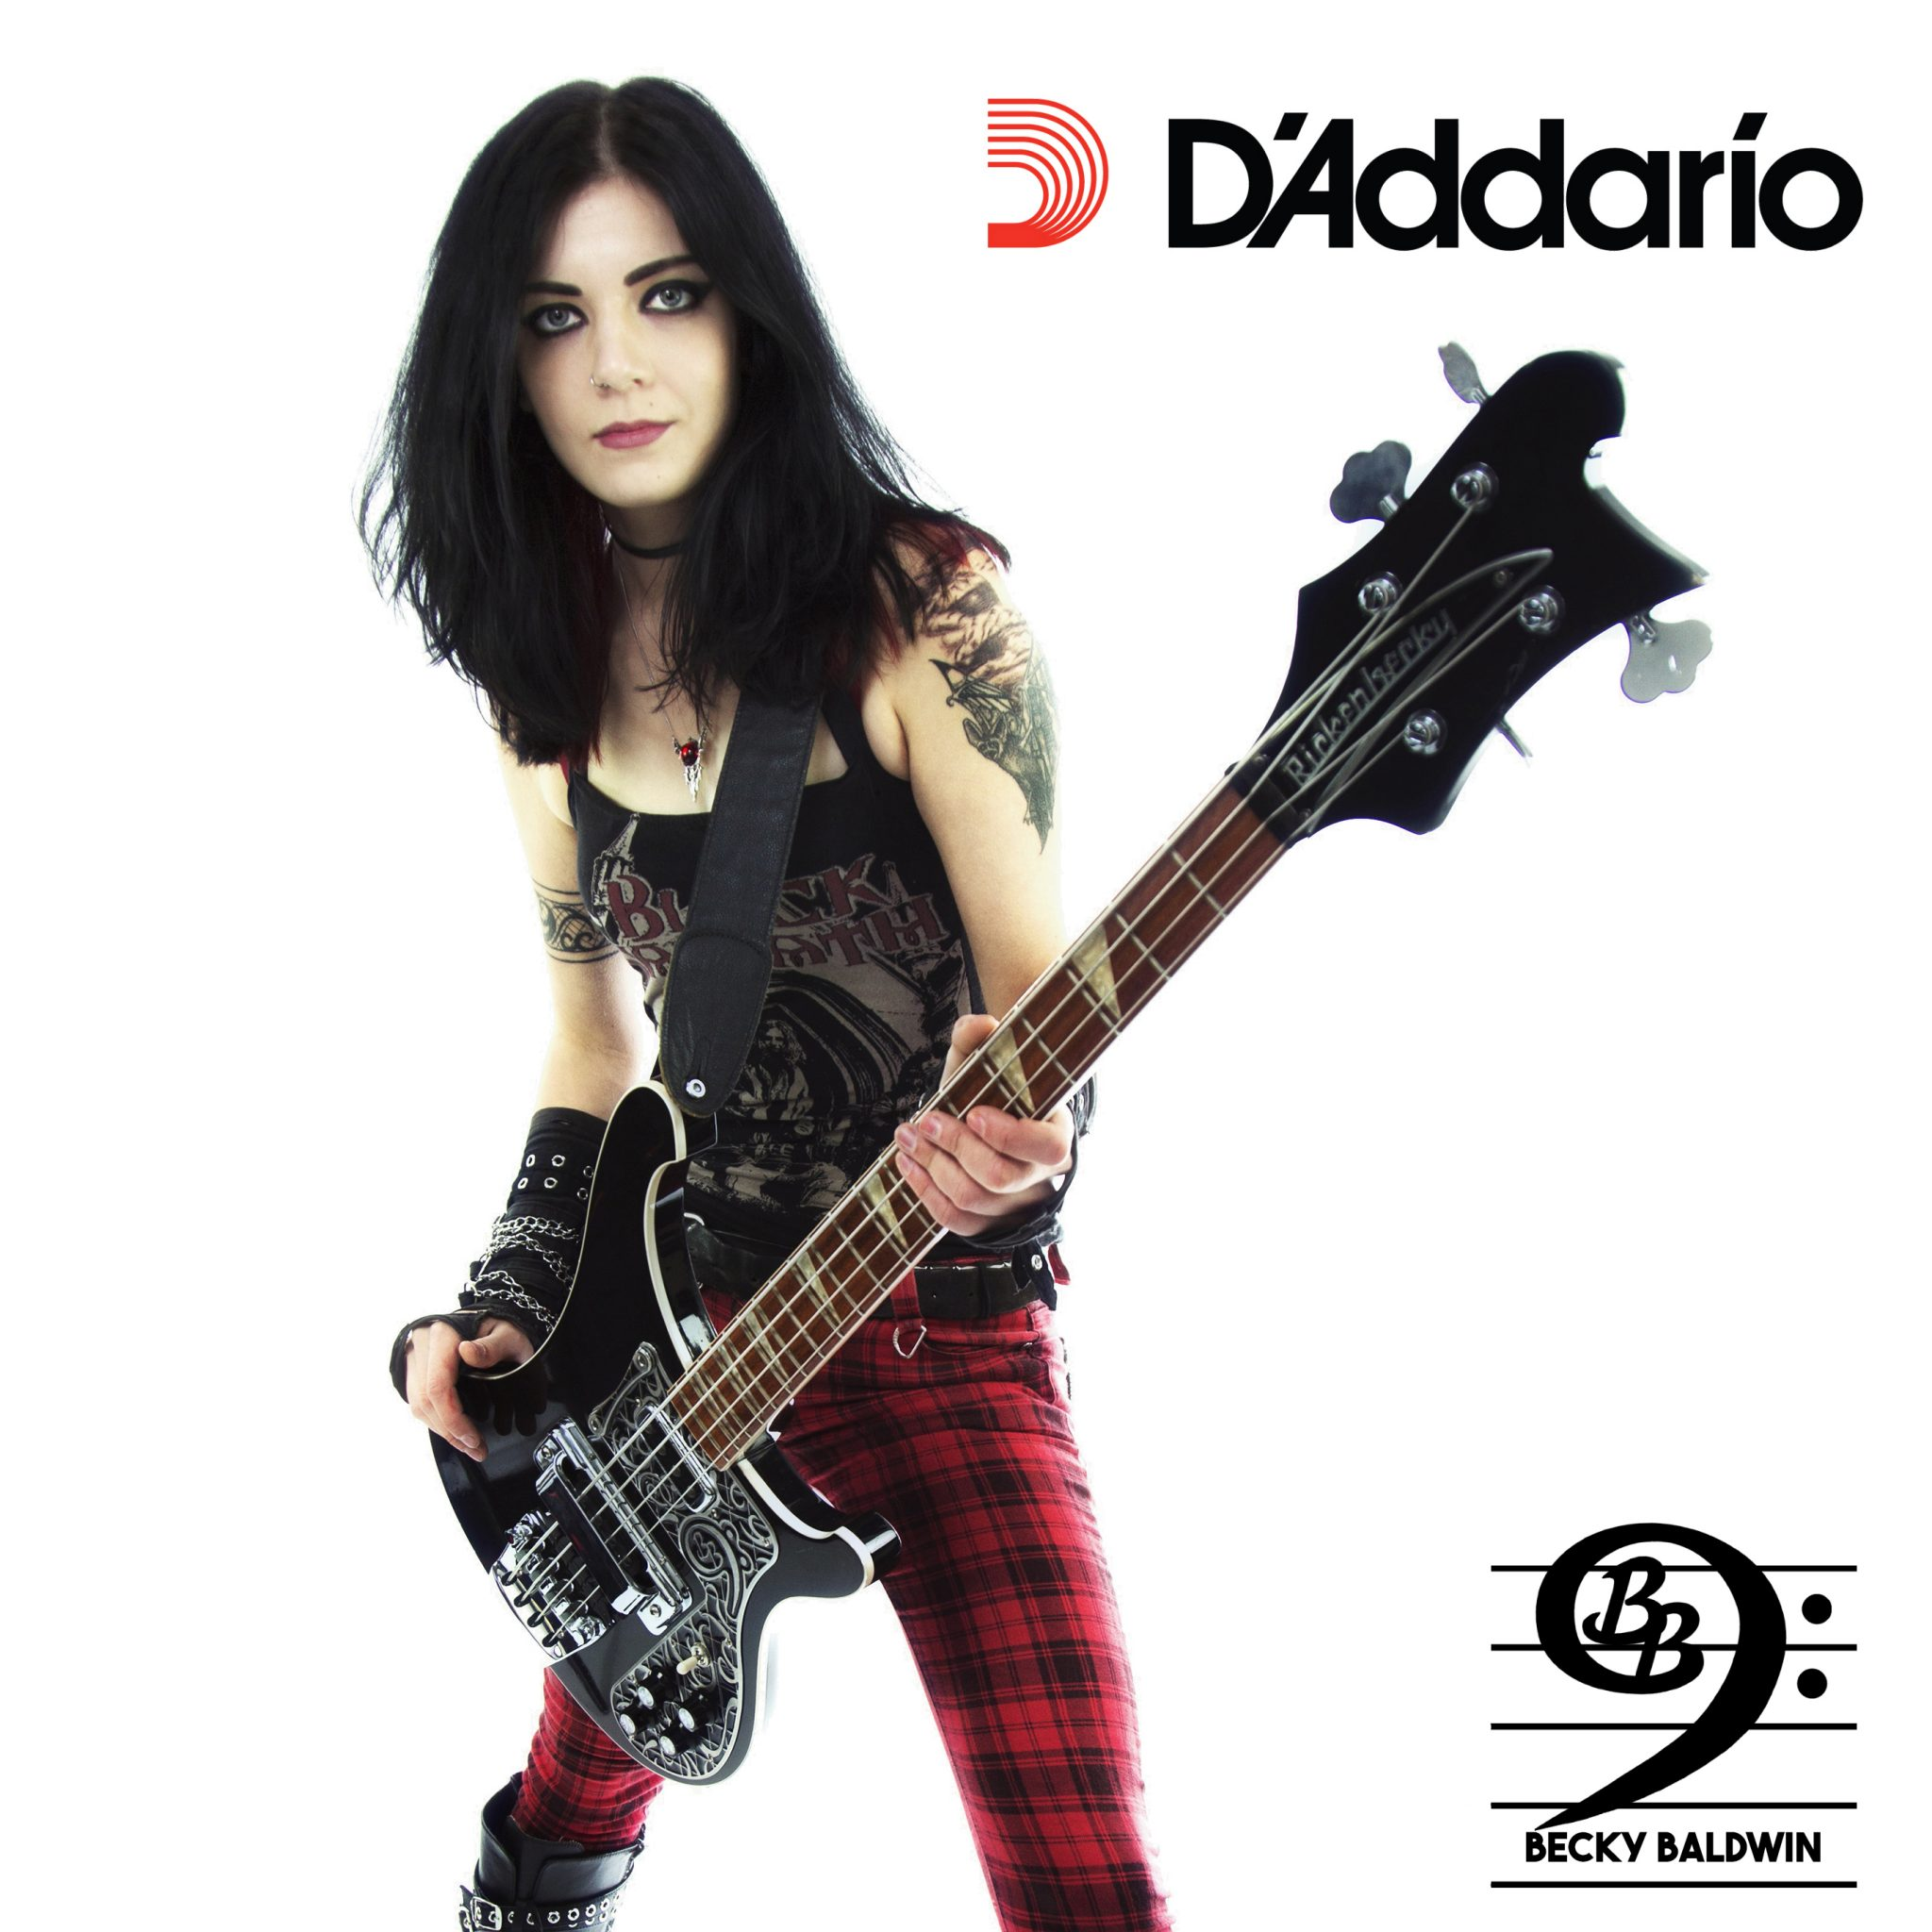 d addario endorsement becky baldwin bass professional bassist. Black Bedroom Furniture Sets. Home Design Ideas